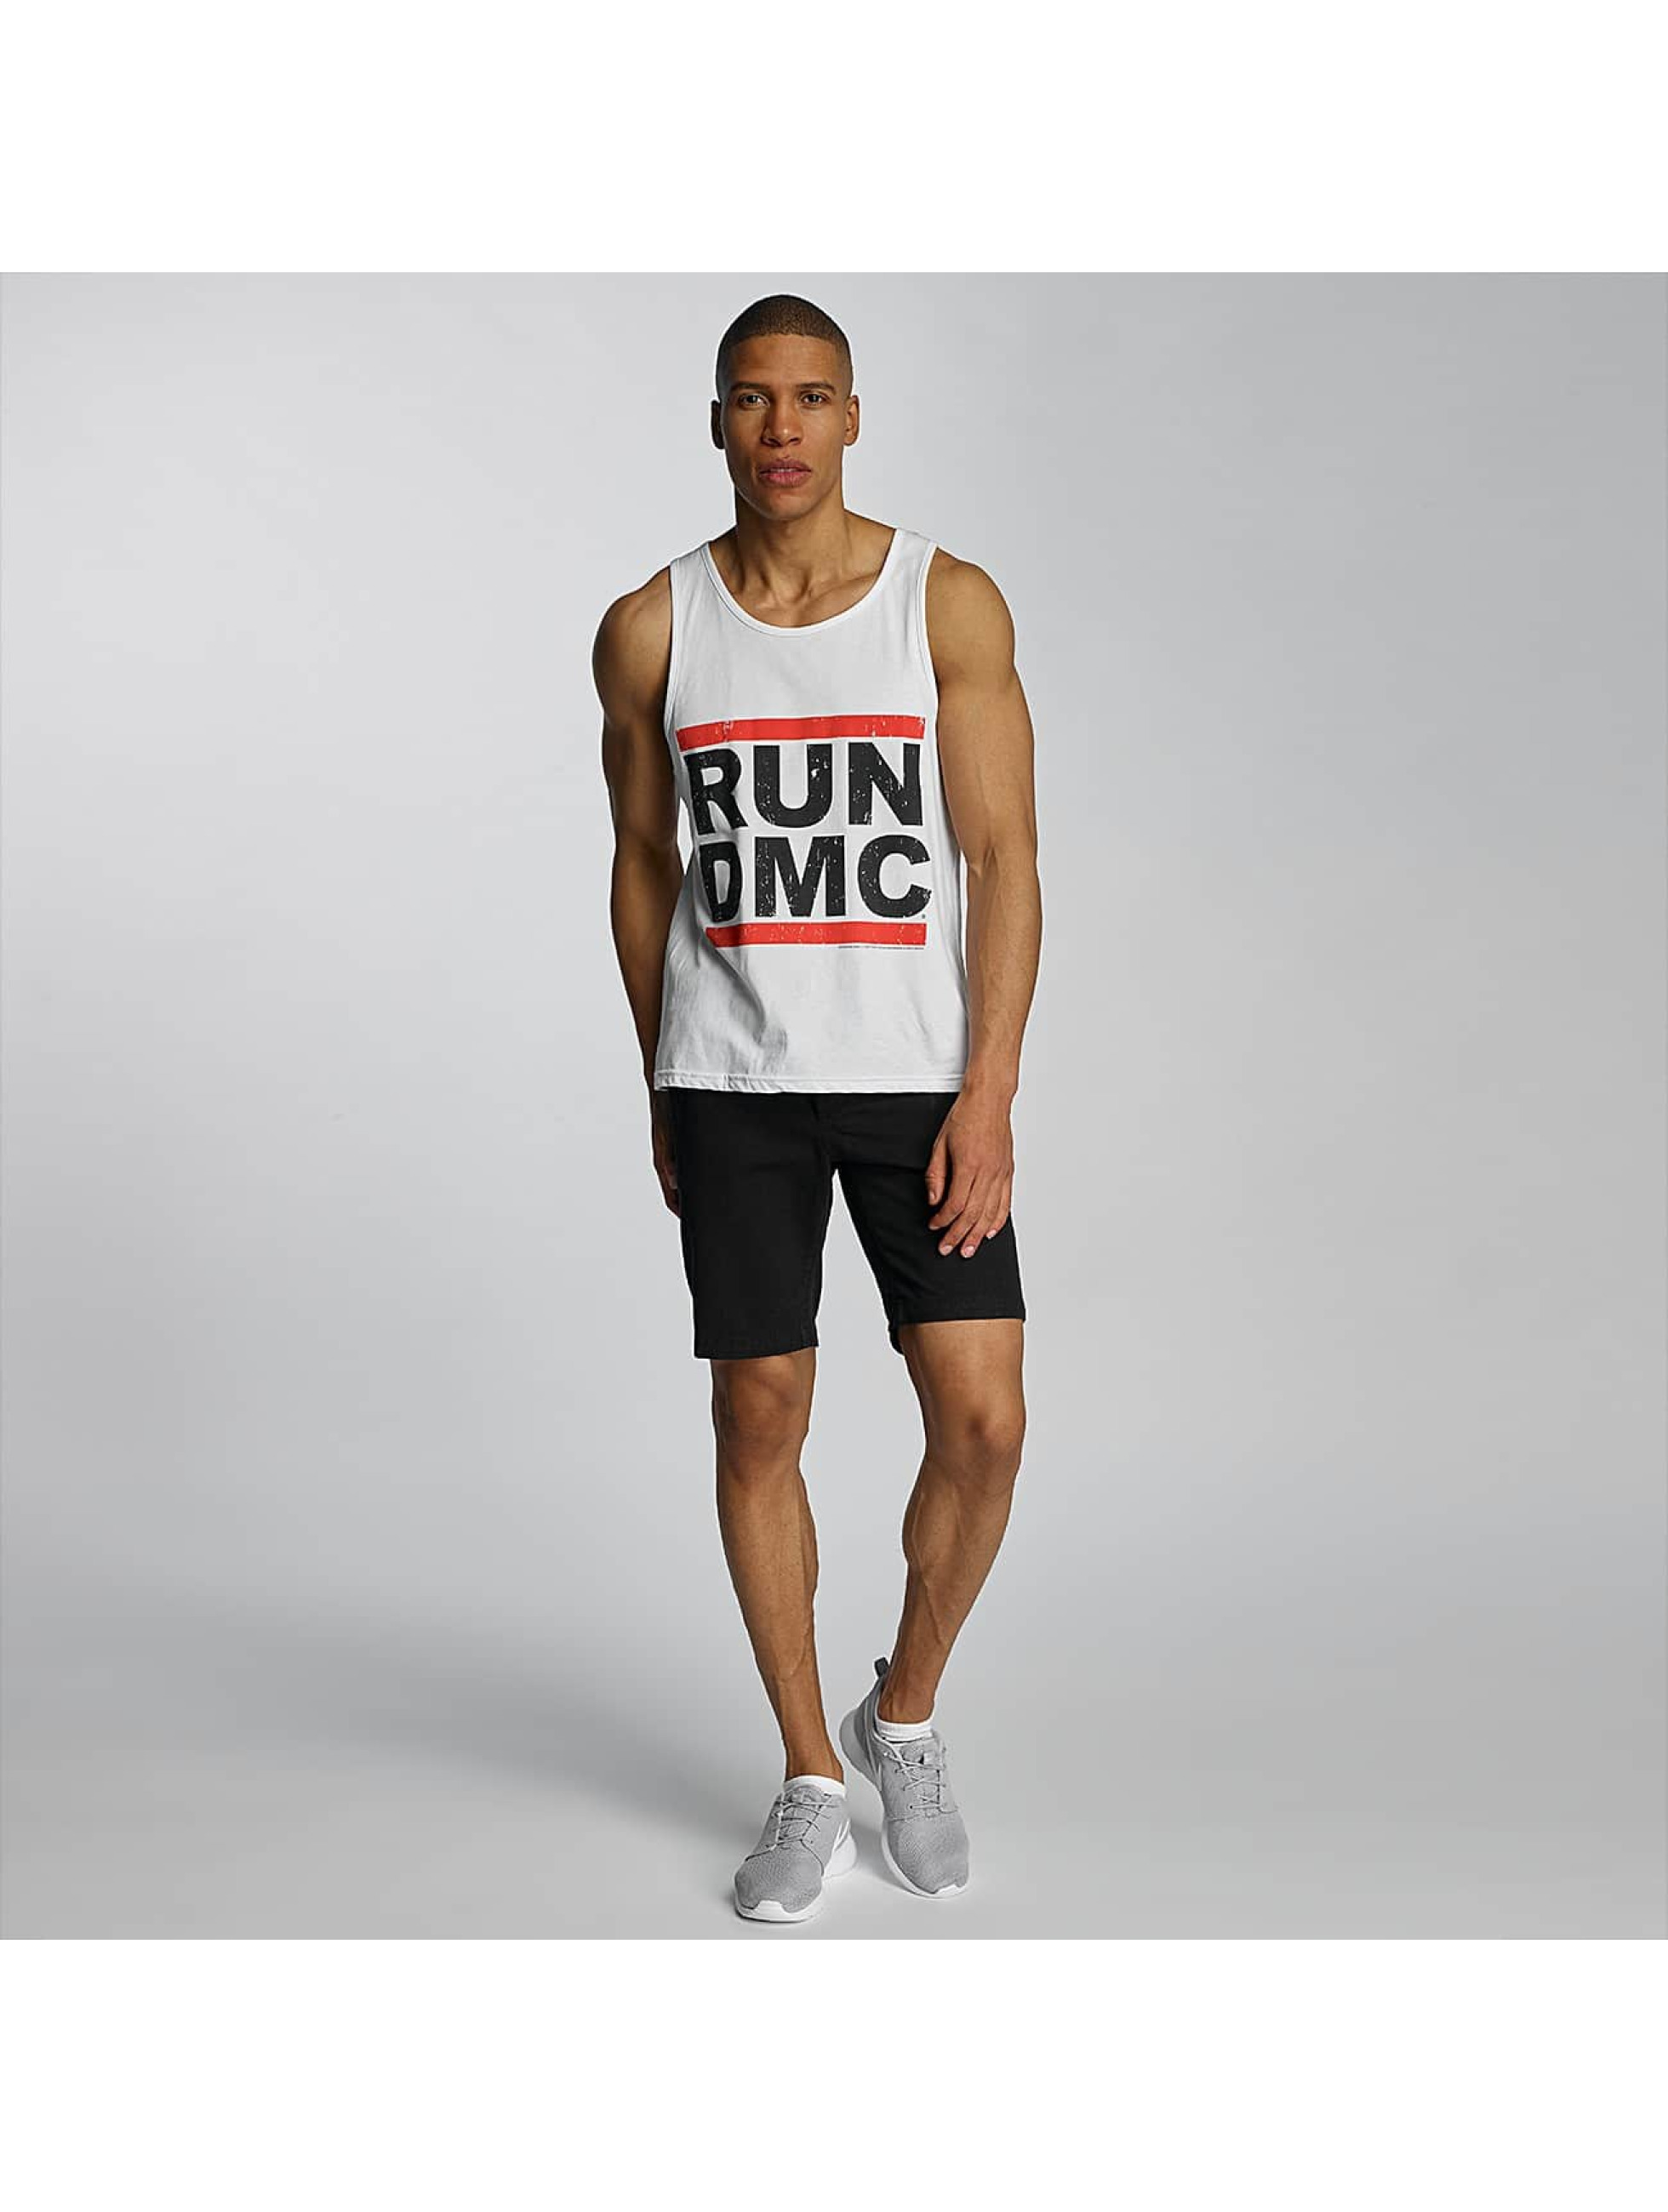 Amplified Tank Tops Run DMC Logo white